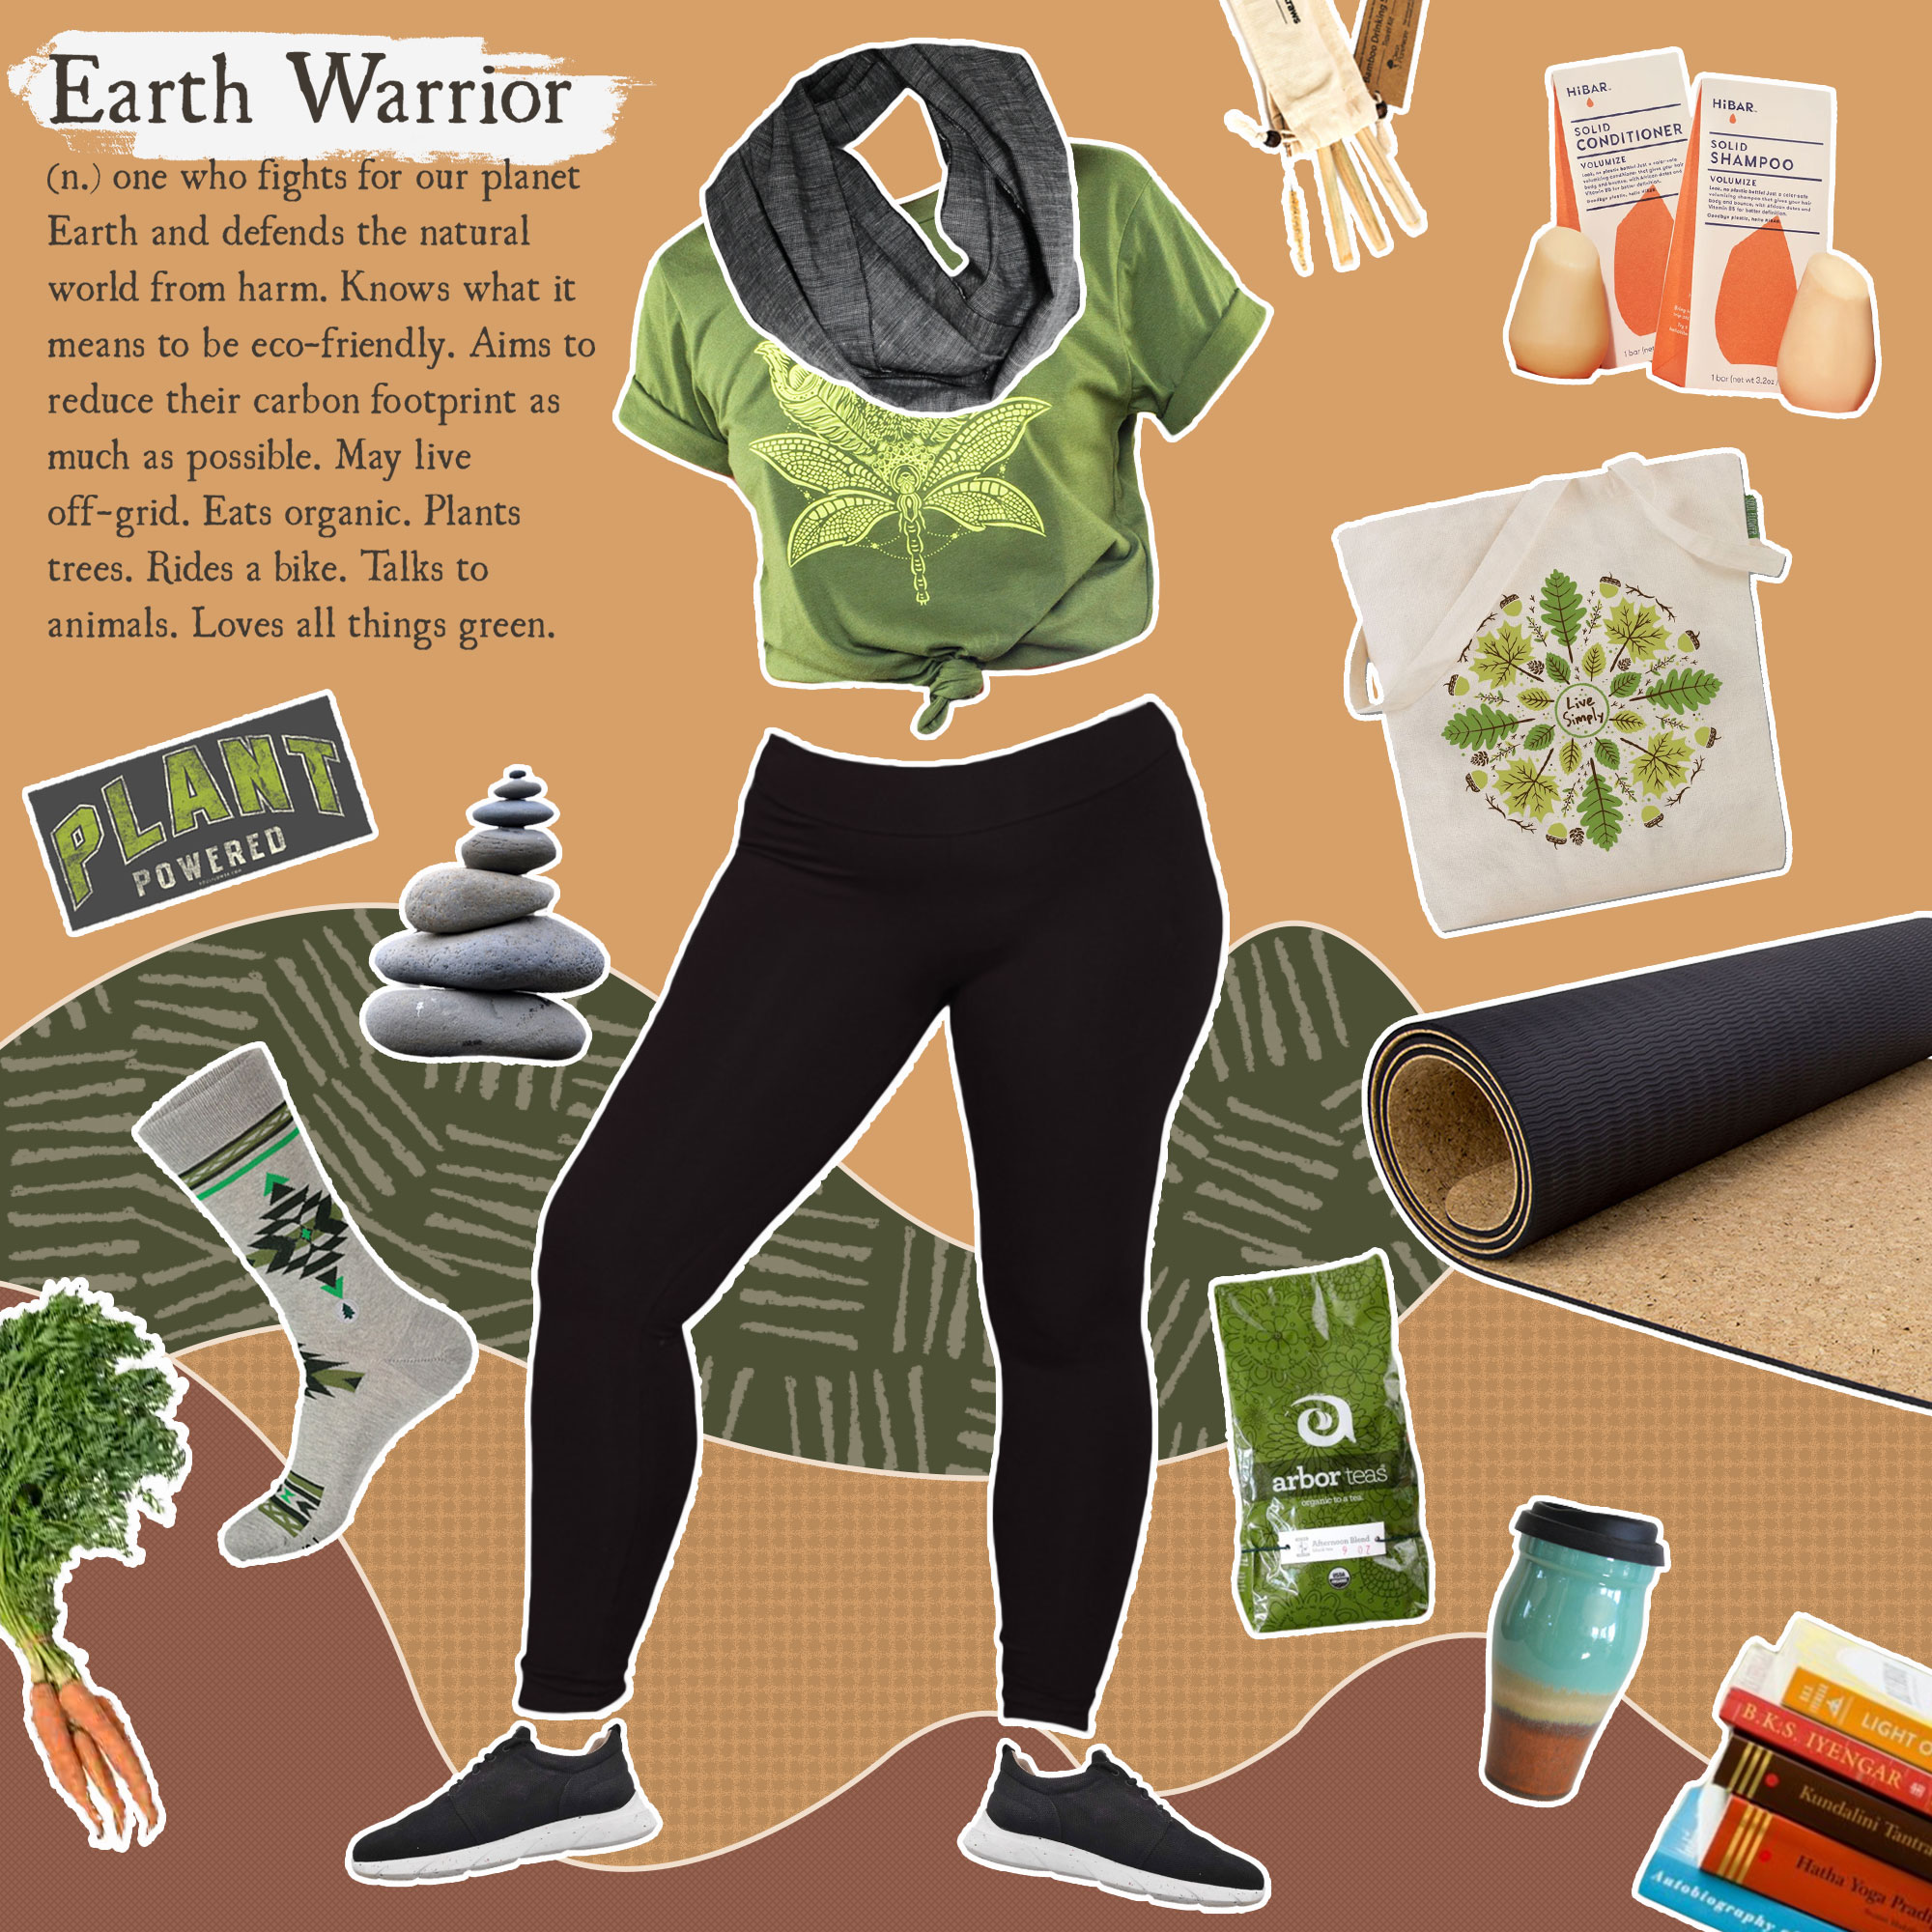 EarthWarrior Blog - What's Your Style? Find Your Best Outfit!